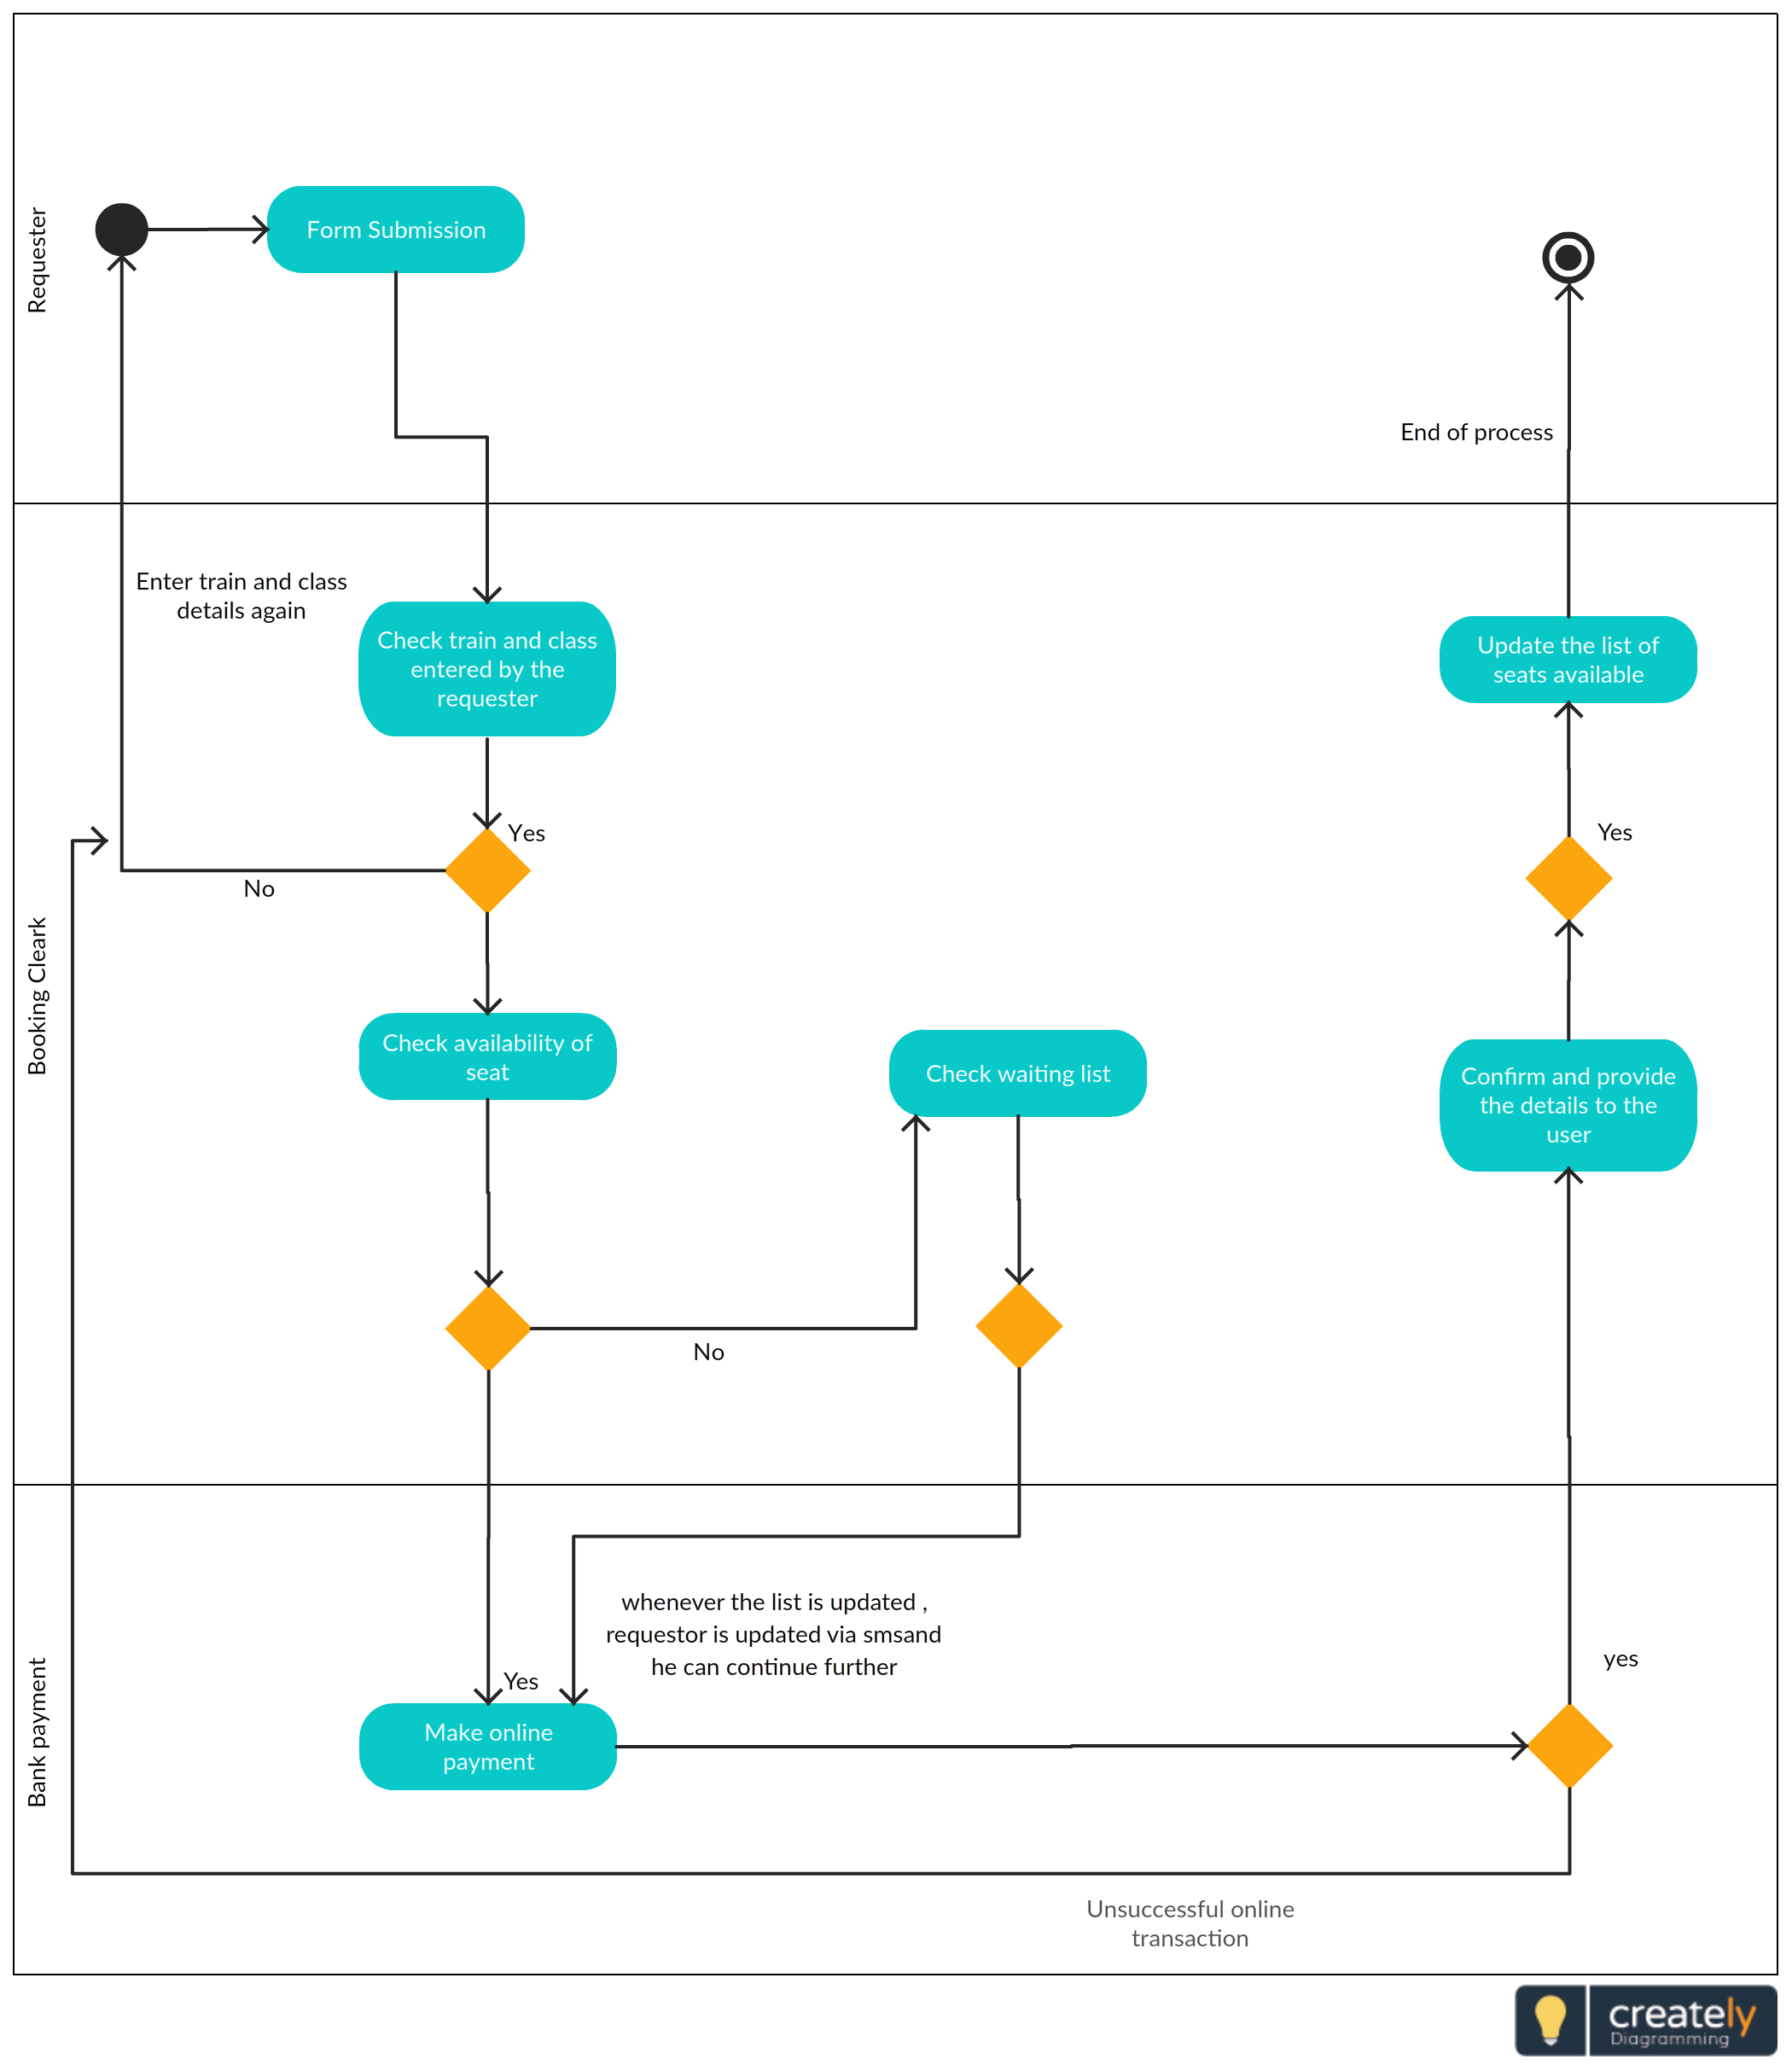 an activity diagram template for a railway ticket reservation workflow this flow presents the subjects involved in the system and the process of booking  [ 2100 x 2420 Pixel ]